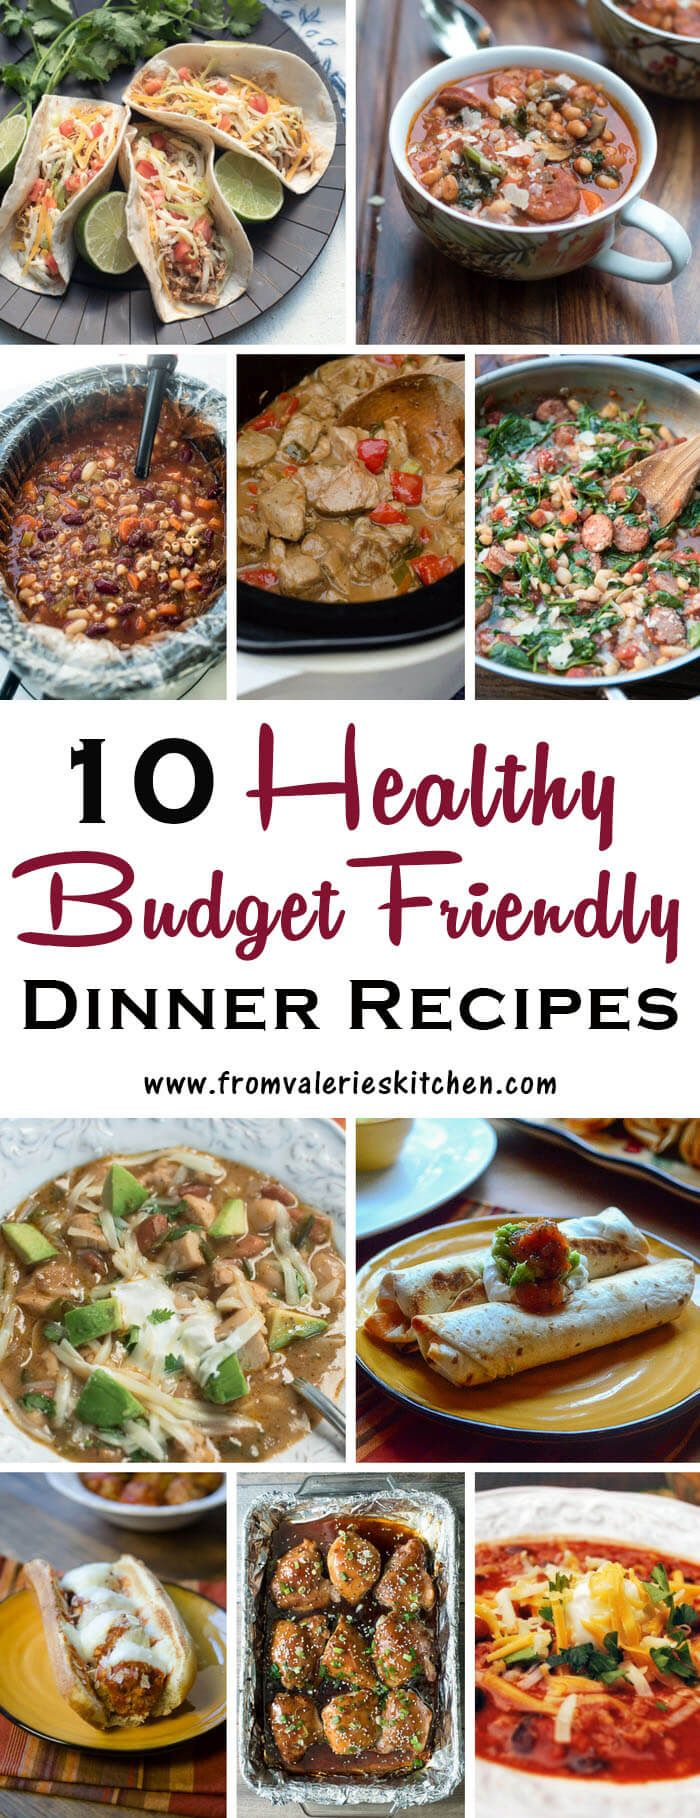 Familiar, comforting meals that are all wholesome options and inexpensive to prepare. These 10 Healthy Dinner Recipes will help you get back on track! ~ http://www.fromvalerieskitchen.com